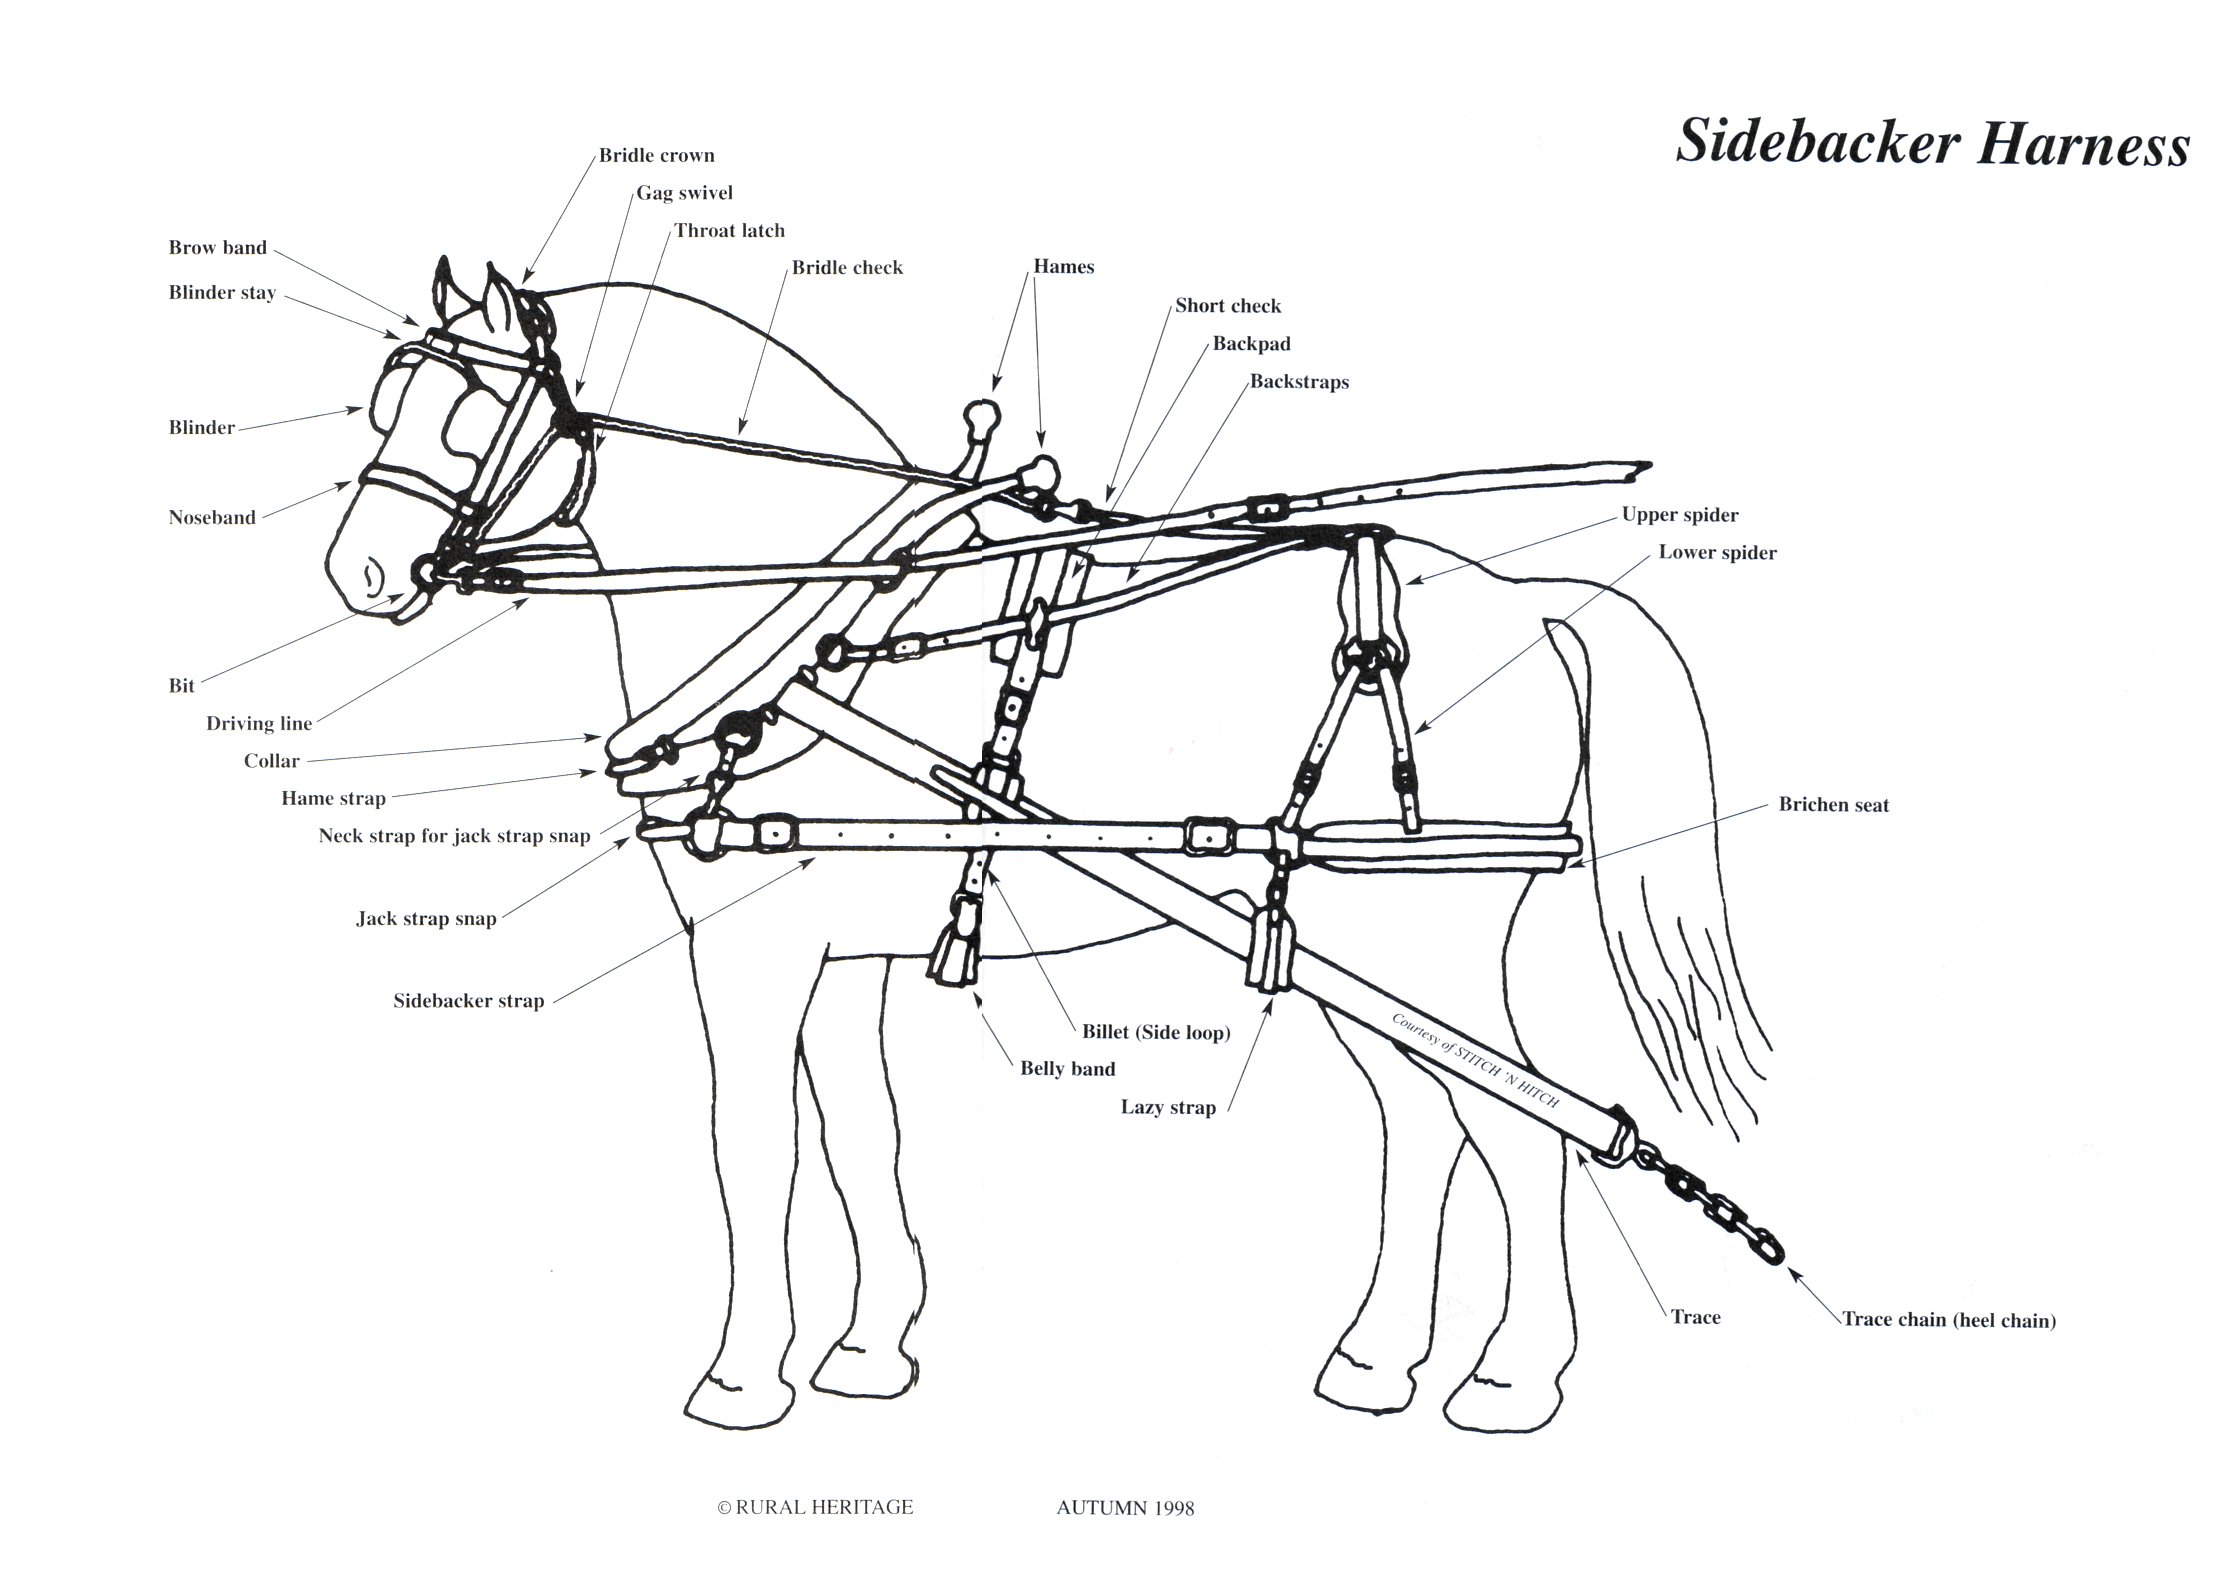 Rural Heritage Sidebacker Harness Illustration